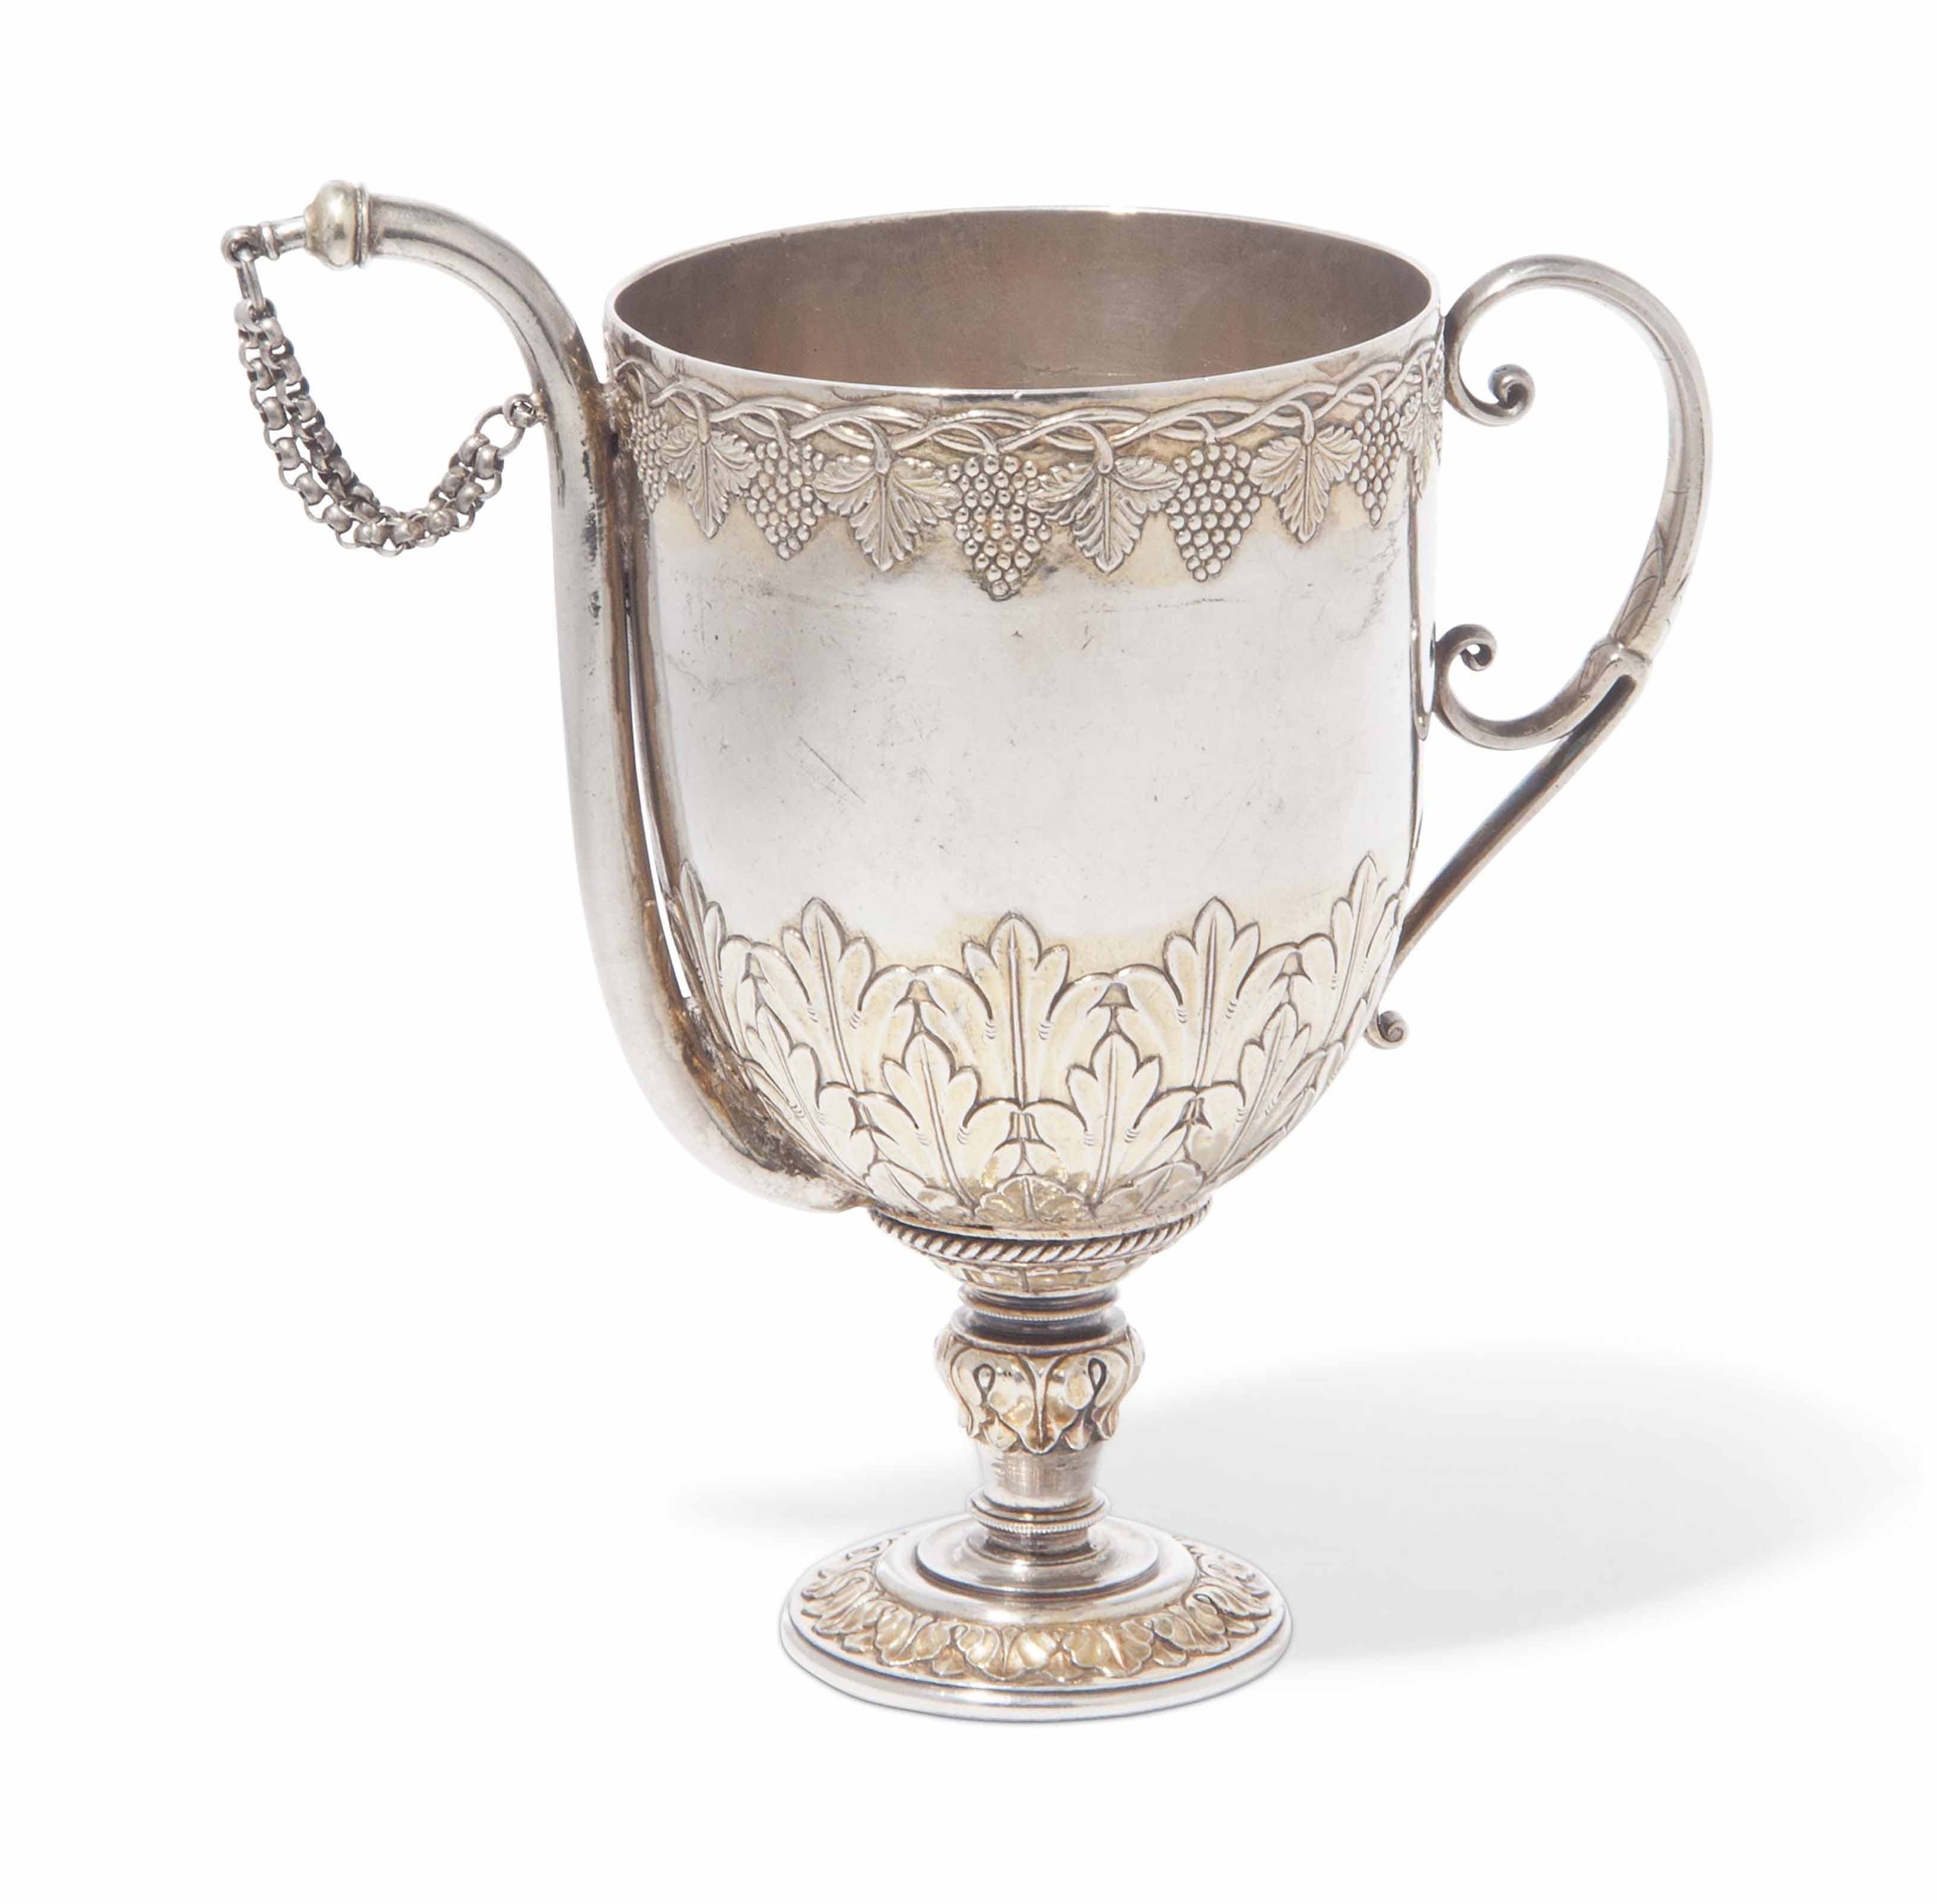 A PARCEL-GILT SILVER FOOTED CUP